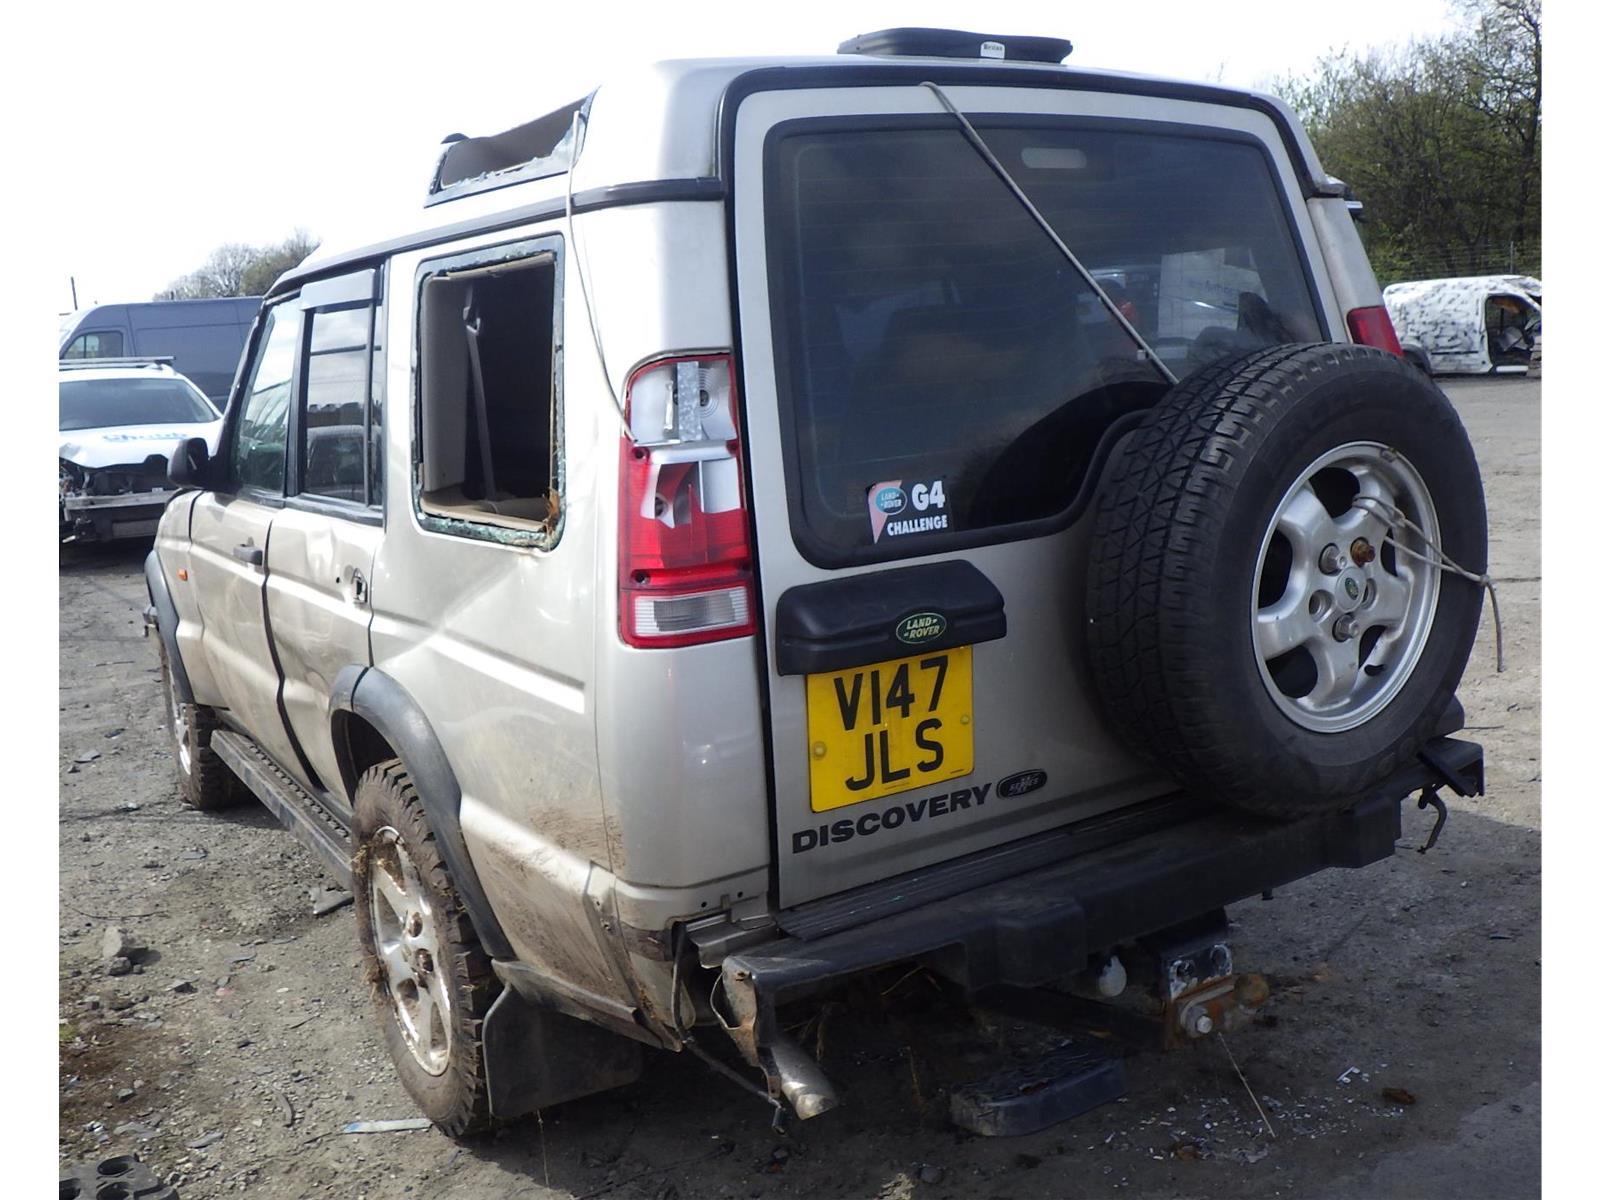 2000 Land Rover Discovery 1998 To 2003 5 Door 4x4 Diesel Manual